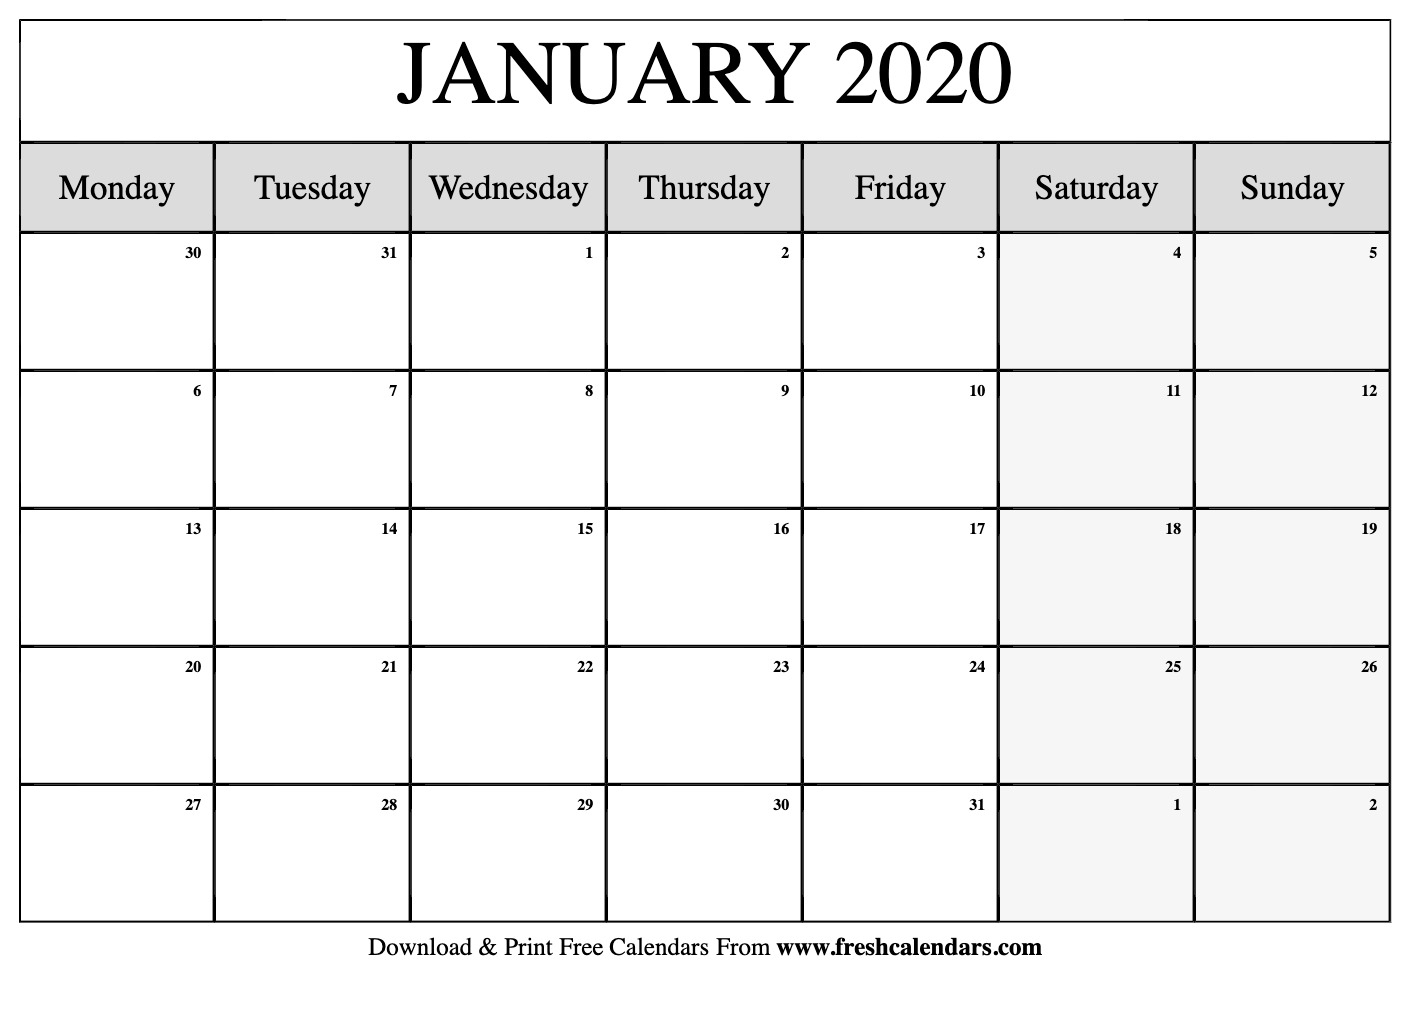 Blank 2020 Calendar Starting On Saturday Printable Free | Calendar Template Printable Monthly Yearly